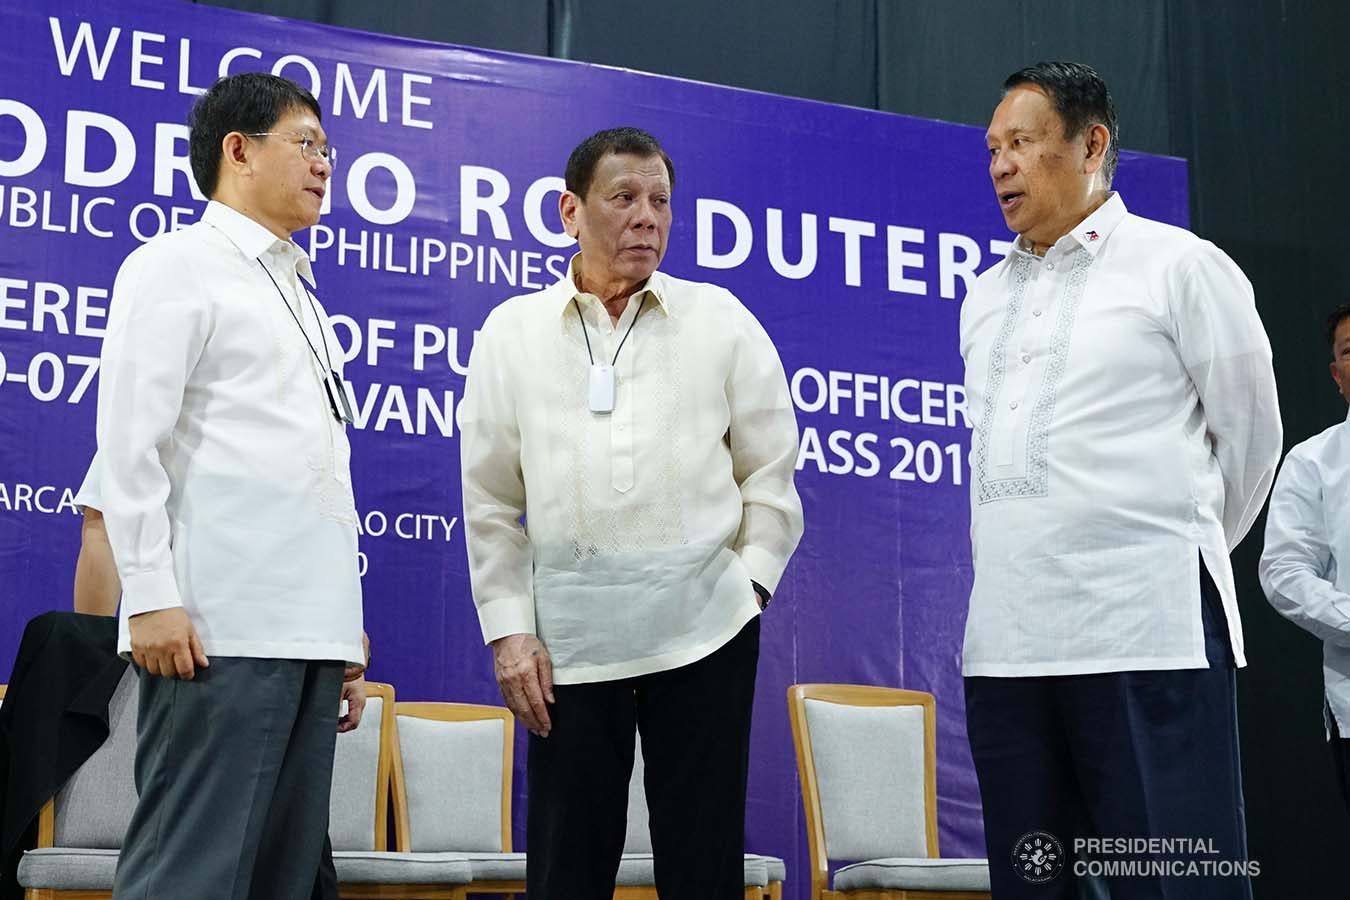 President Rodrigo Roa Duterte chats with Interior and Local Government Secretary Eduardo Año and Philippine Public Safety College President Ricardo De Leon on the sidelines of the joint graduation ceremony of Public Safety Officers Basic Course Class 2019-07 and Advance Course Class 2019-18 at the Arcadia Active Lifestyle Center in Davao City on February 20, 2020. JOEY DALUMPINES/PRESIDENTIAL PHOTO